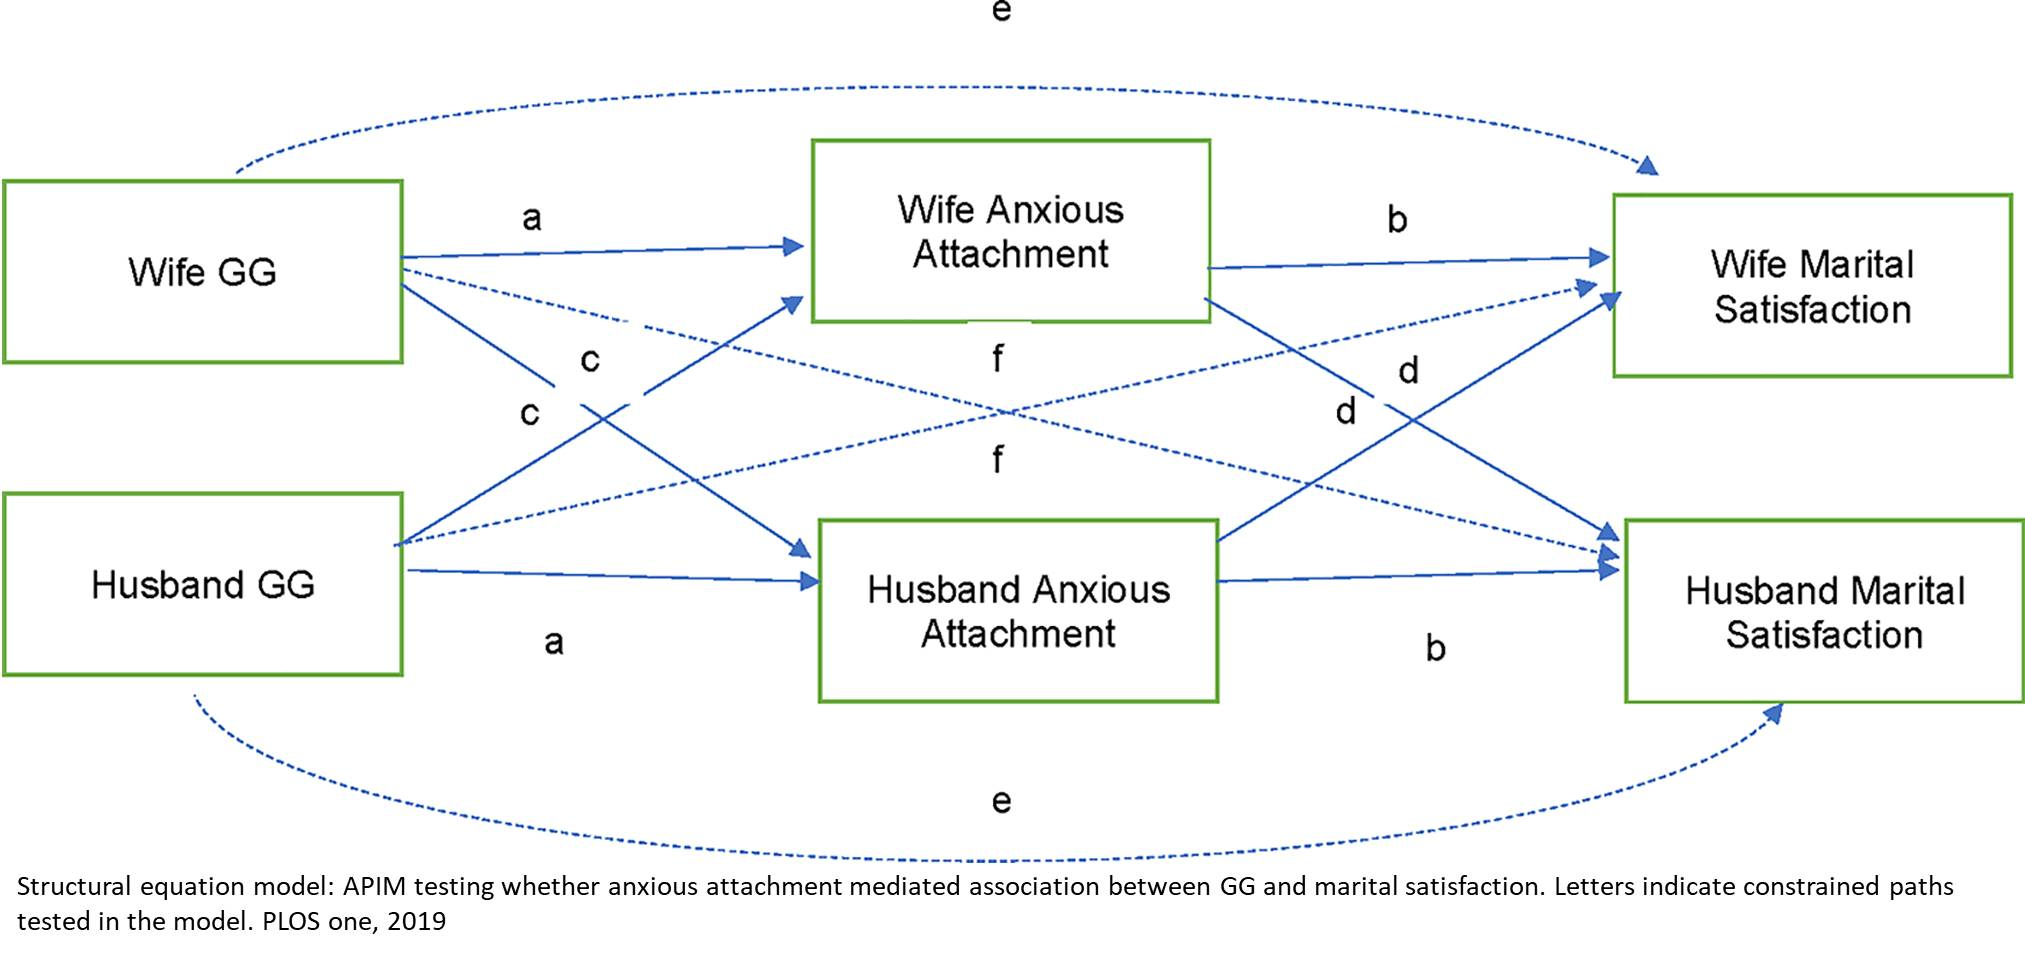 Does genetics play a role in happy marriage?